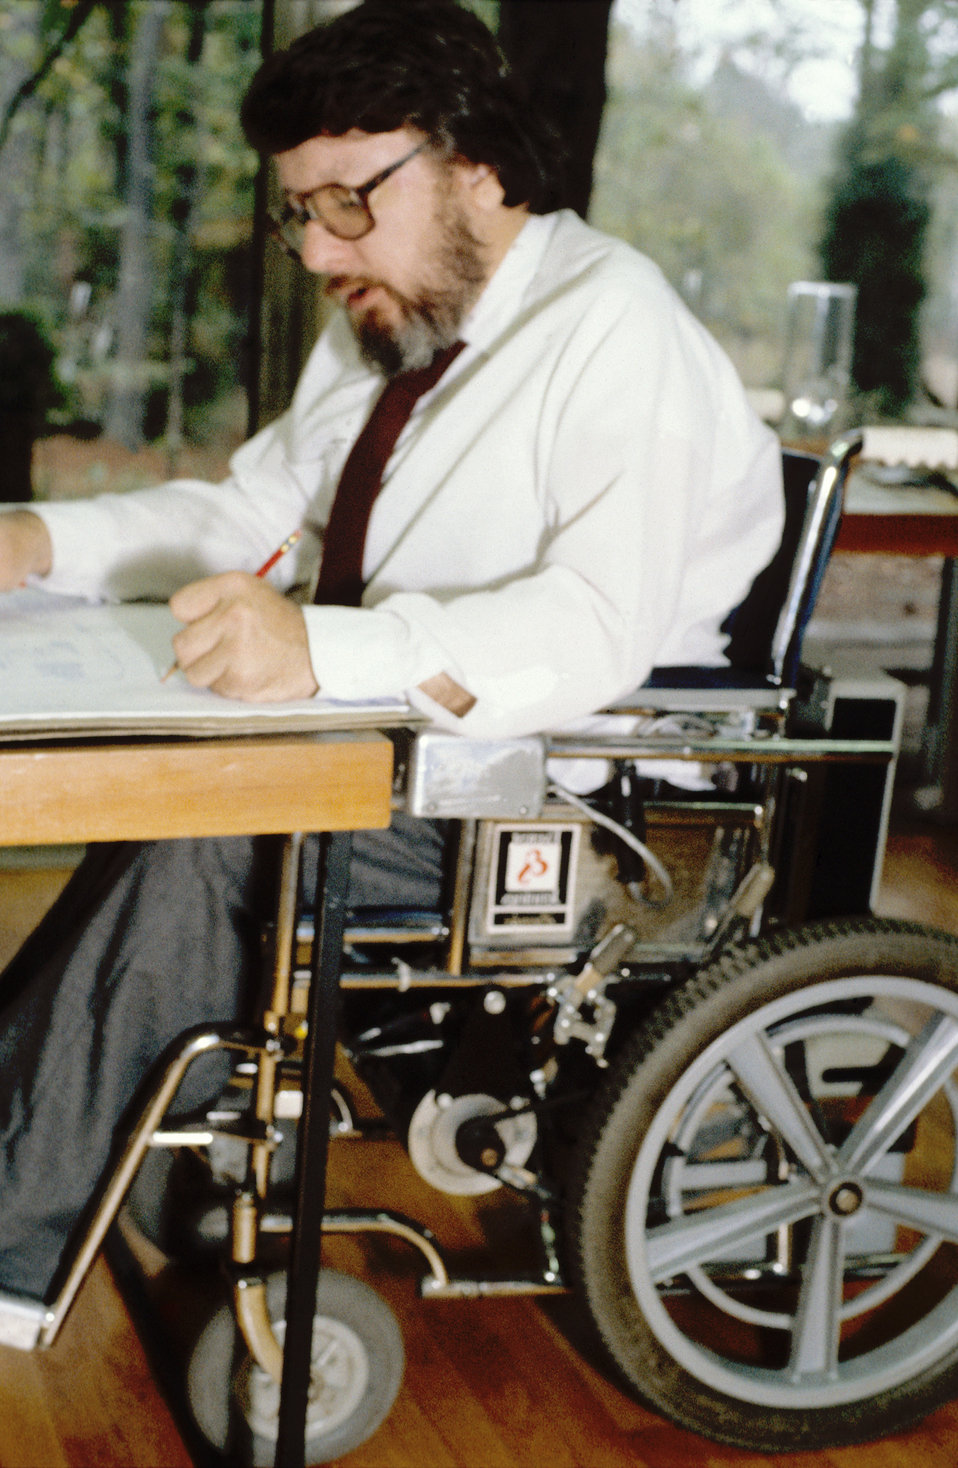 Seated in his wheelchair at his accessibility-enhanced drawing table, architect Ron Mace was in the process of producing new designs, which